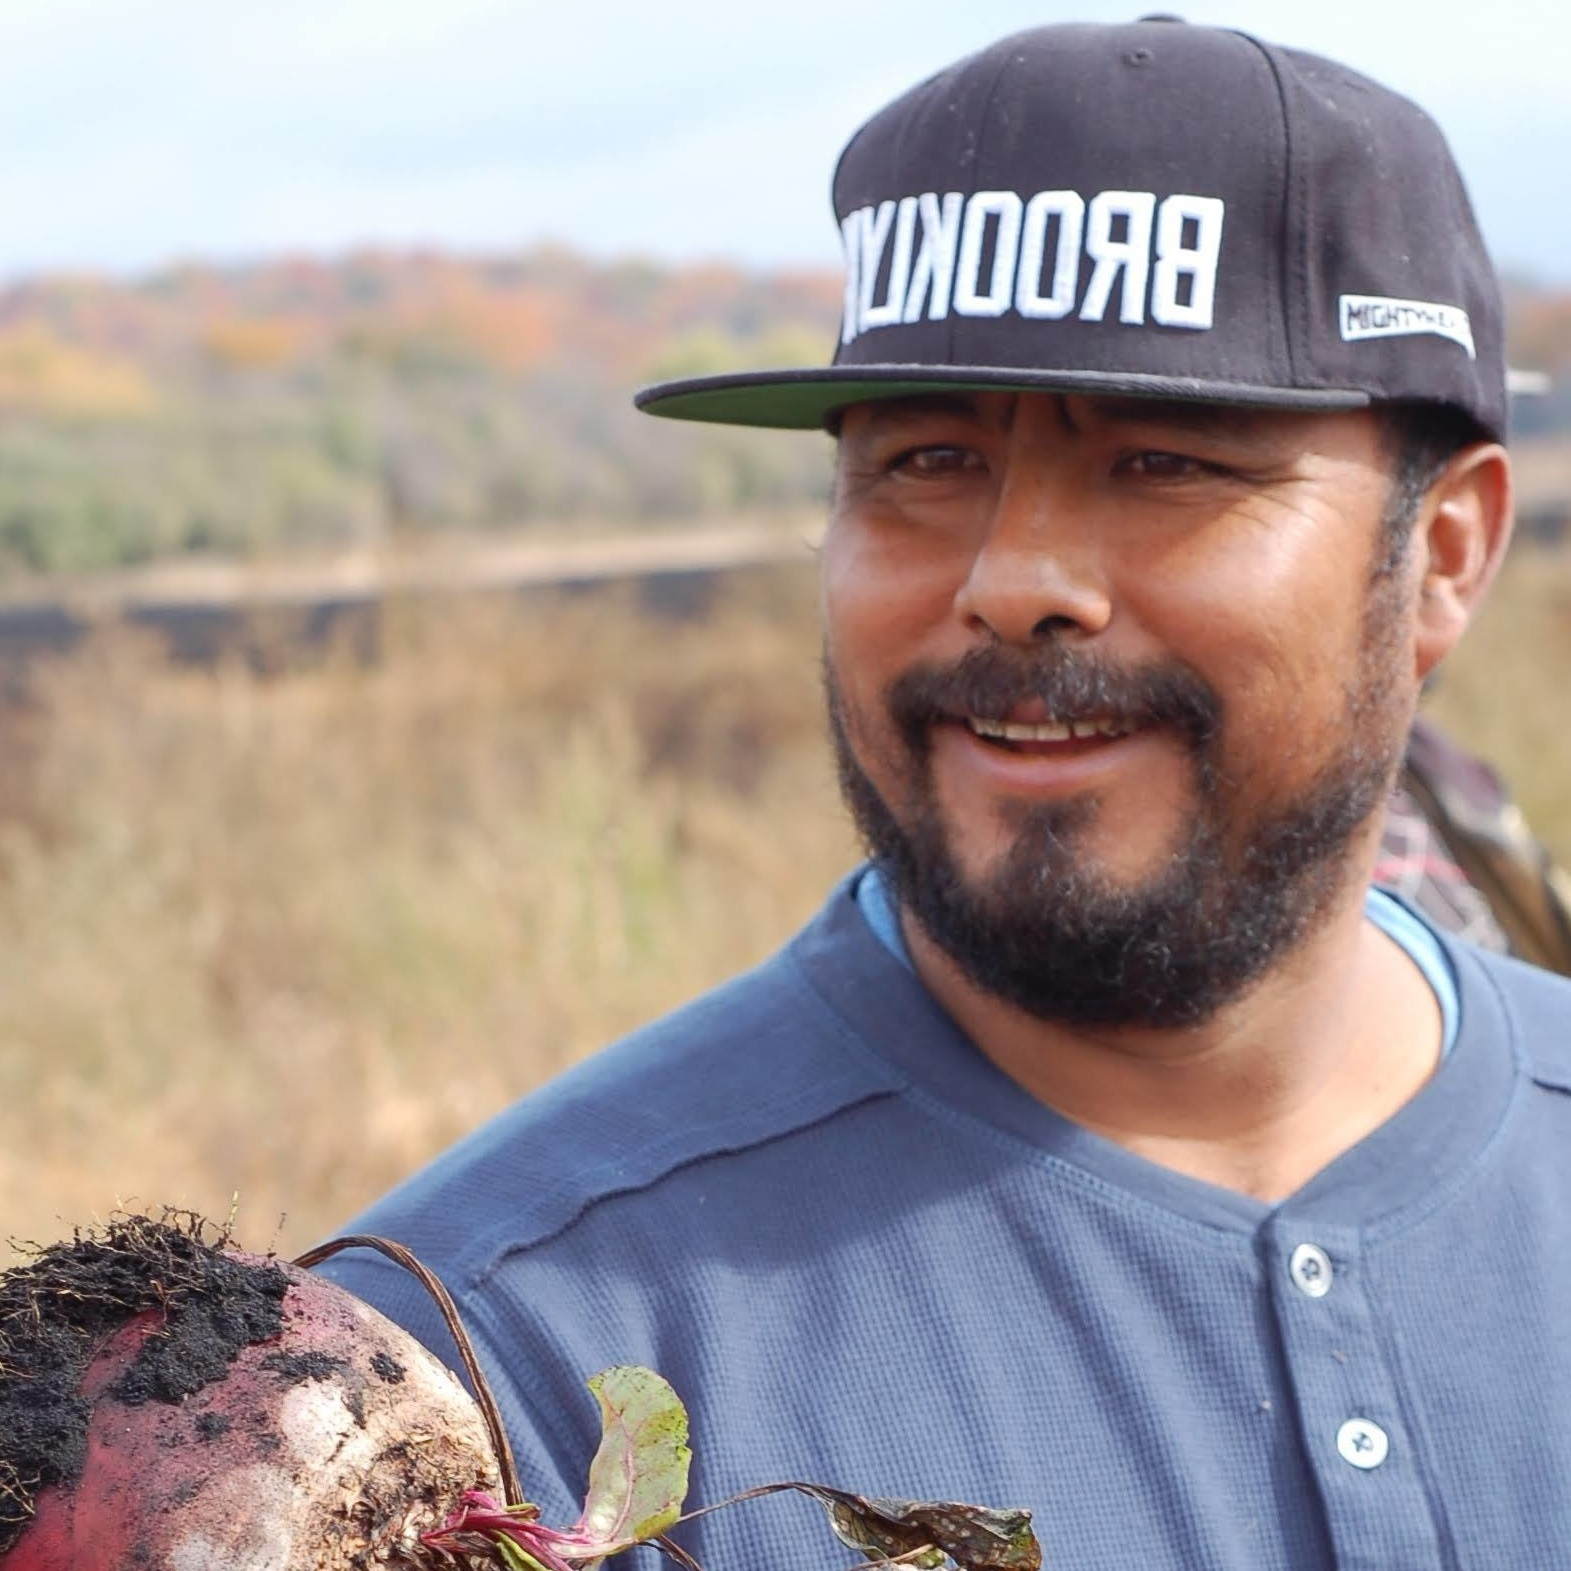 martin rodriguez - We work with Mimomex Farms in Goshen, NY, Tello Farms in Red Hook, NY, Borchert Orchards in Marlboro, NY, Soons Orchards in New Hampton, NY, Moonrise Bakehouse in Sunset Park, and SEY Coffee in Bushwick.